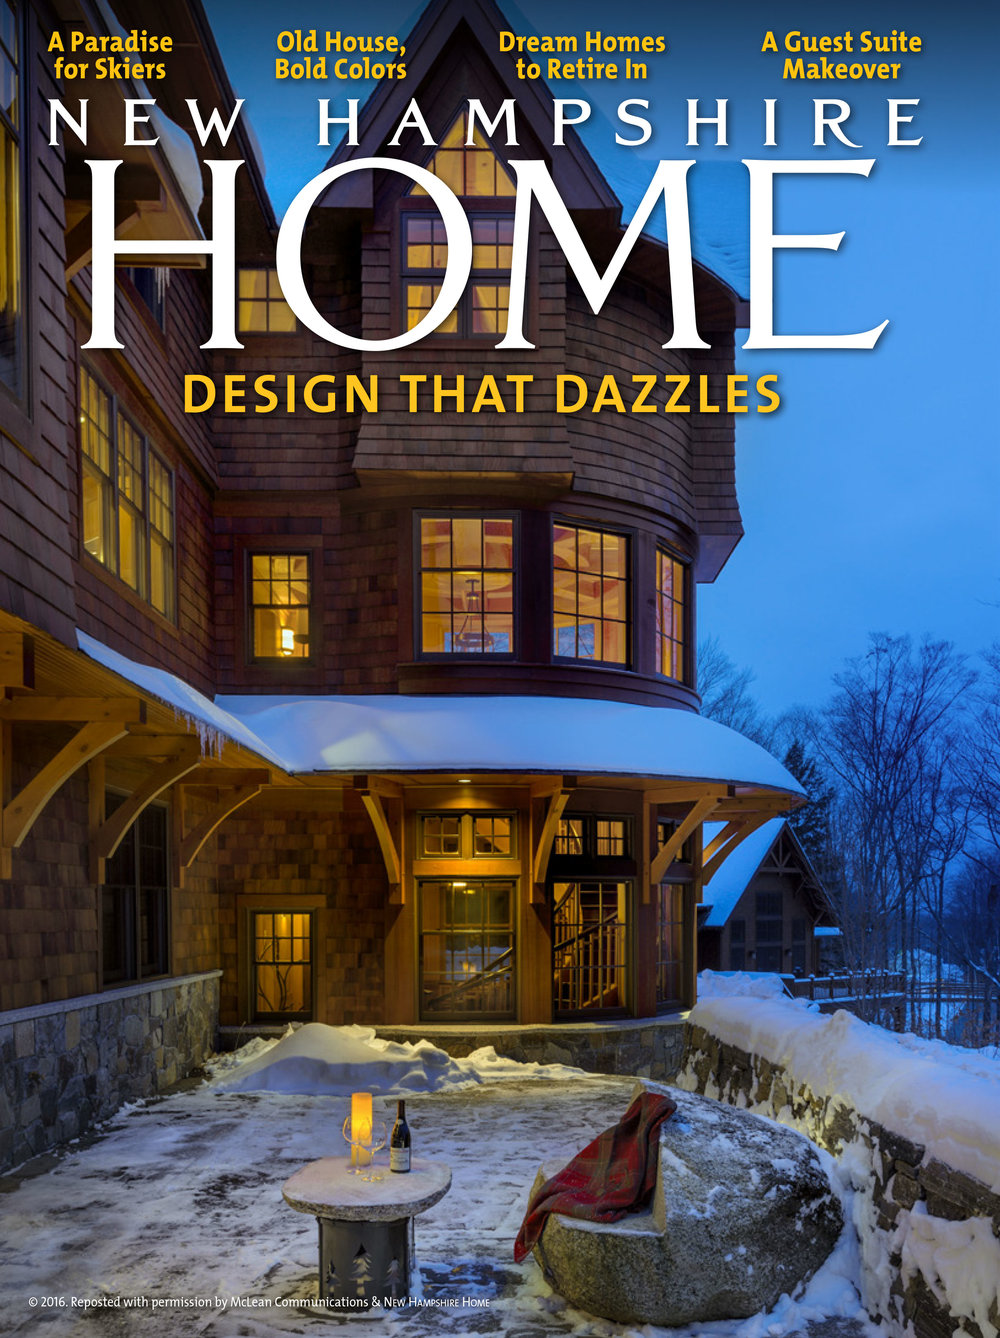 just off the ski trails in Lincoln... A custom-designed HOME for lovers of snow sports. -